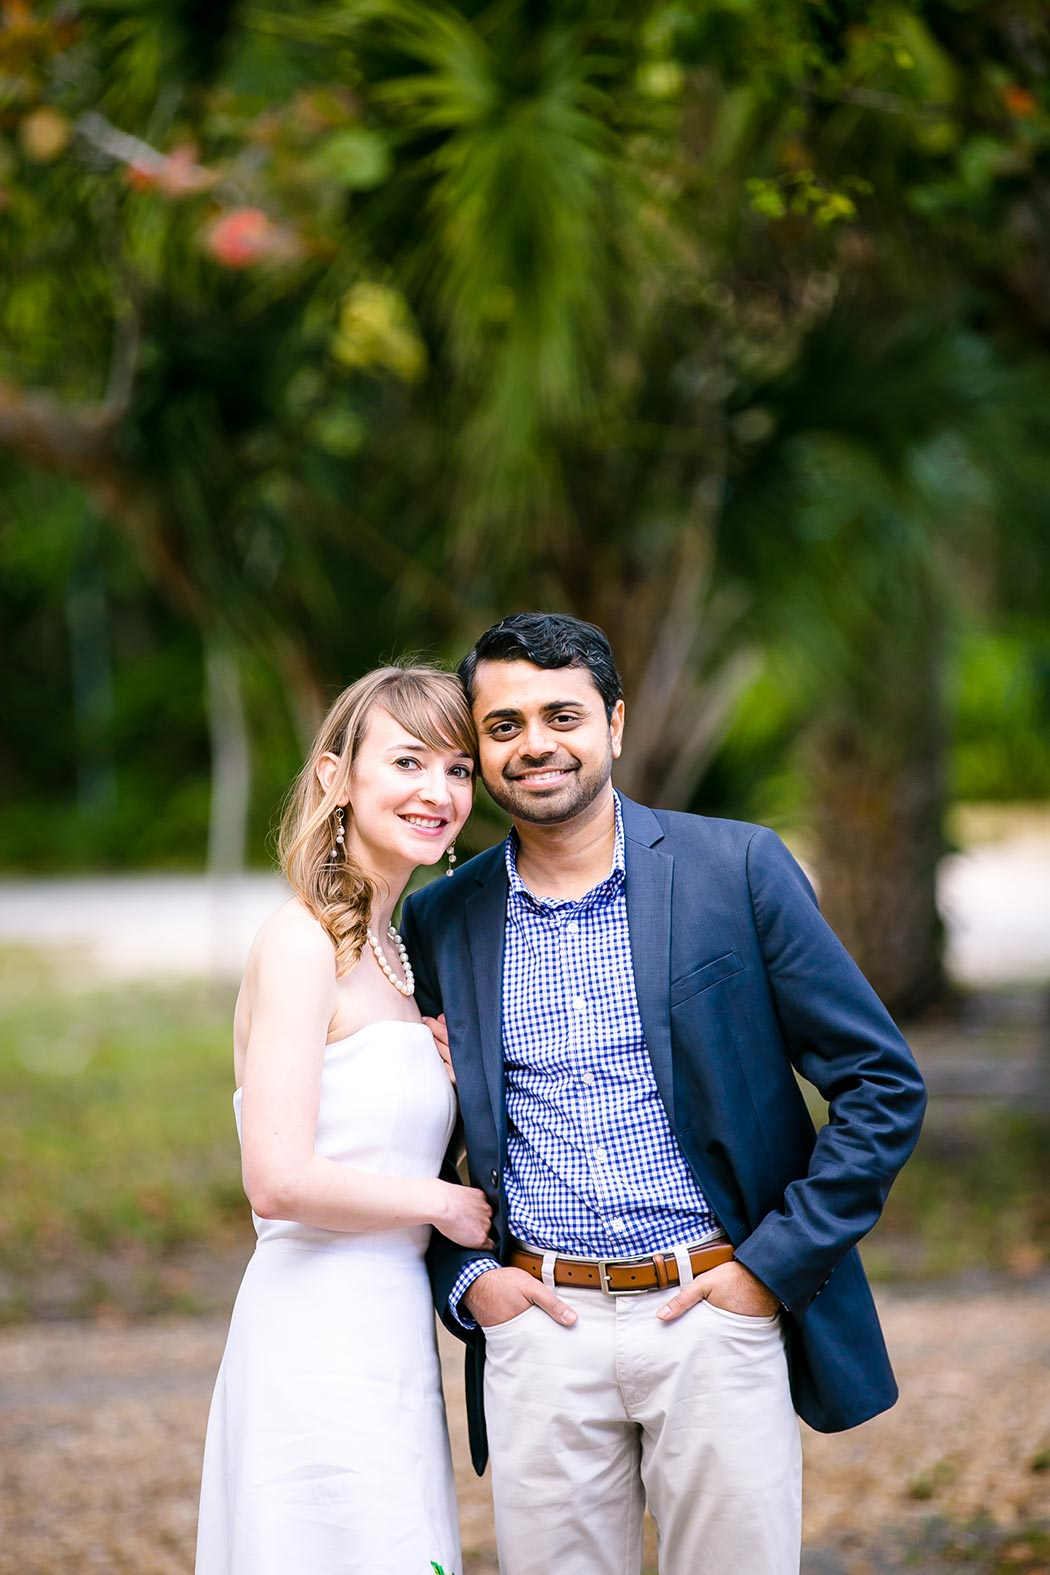 indian man and american woman embrace for fort lauderdale engagement photoshoot